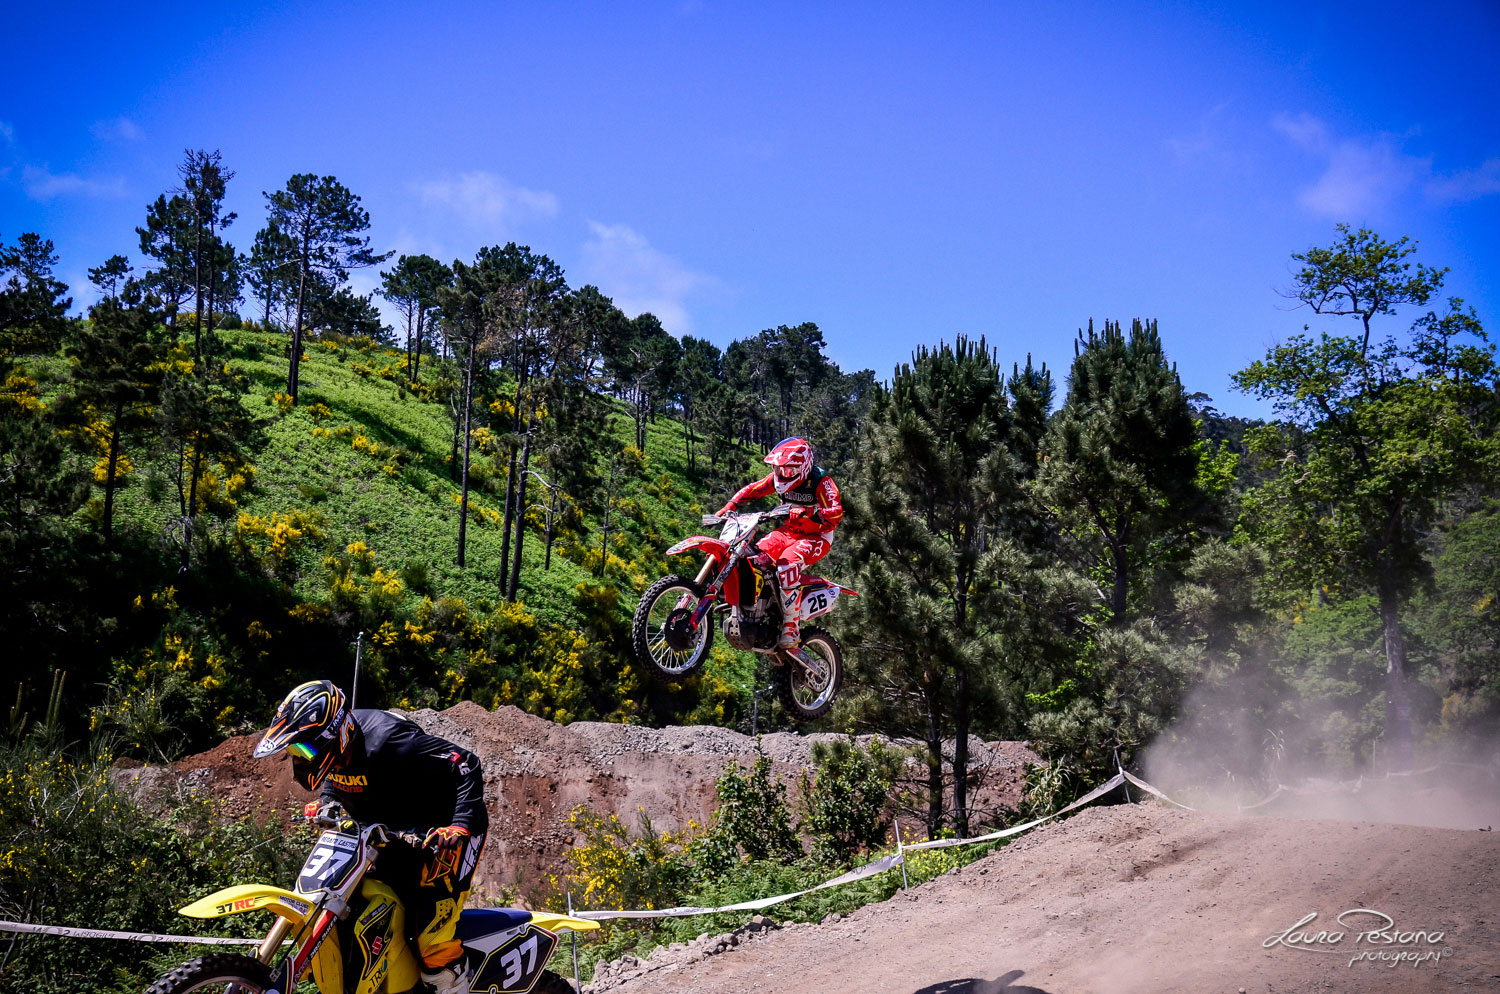 A rider jumping a double on a motocross track